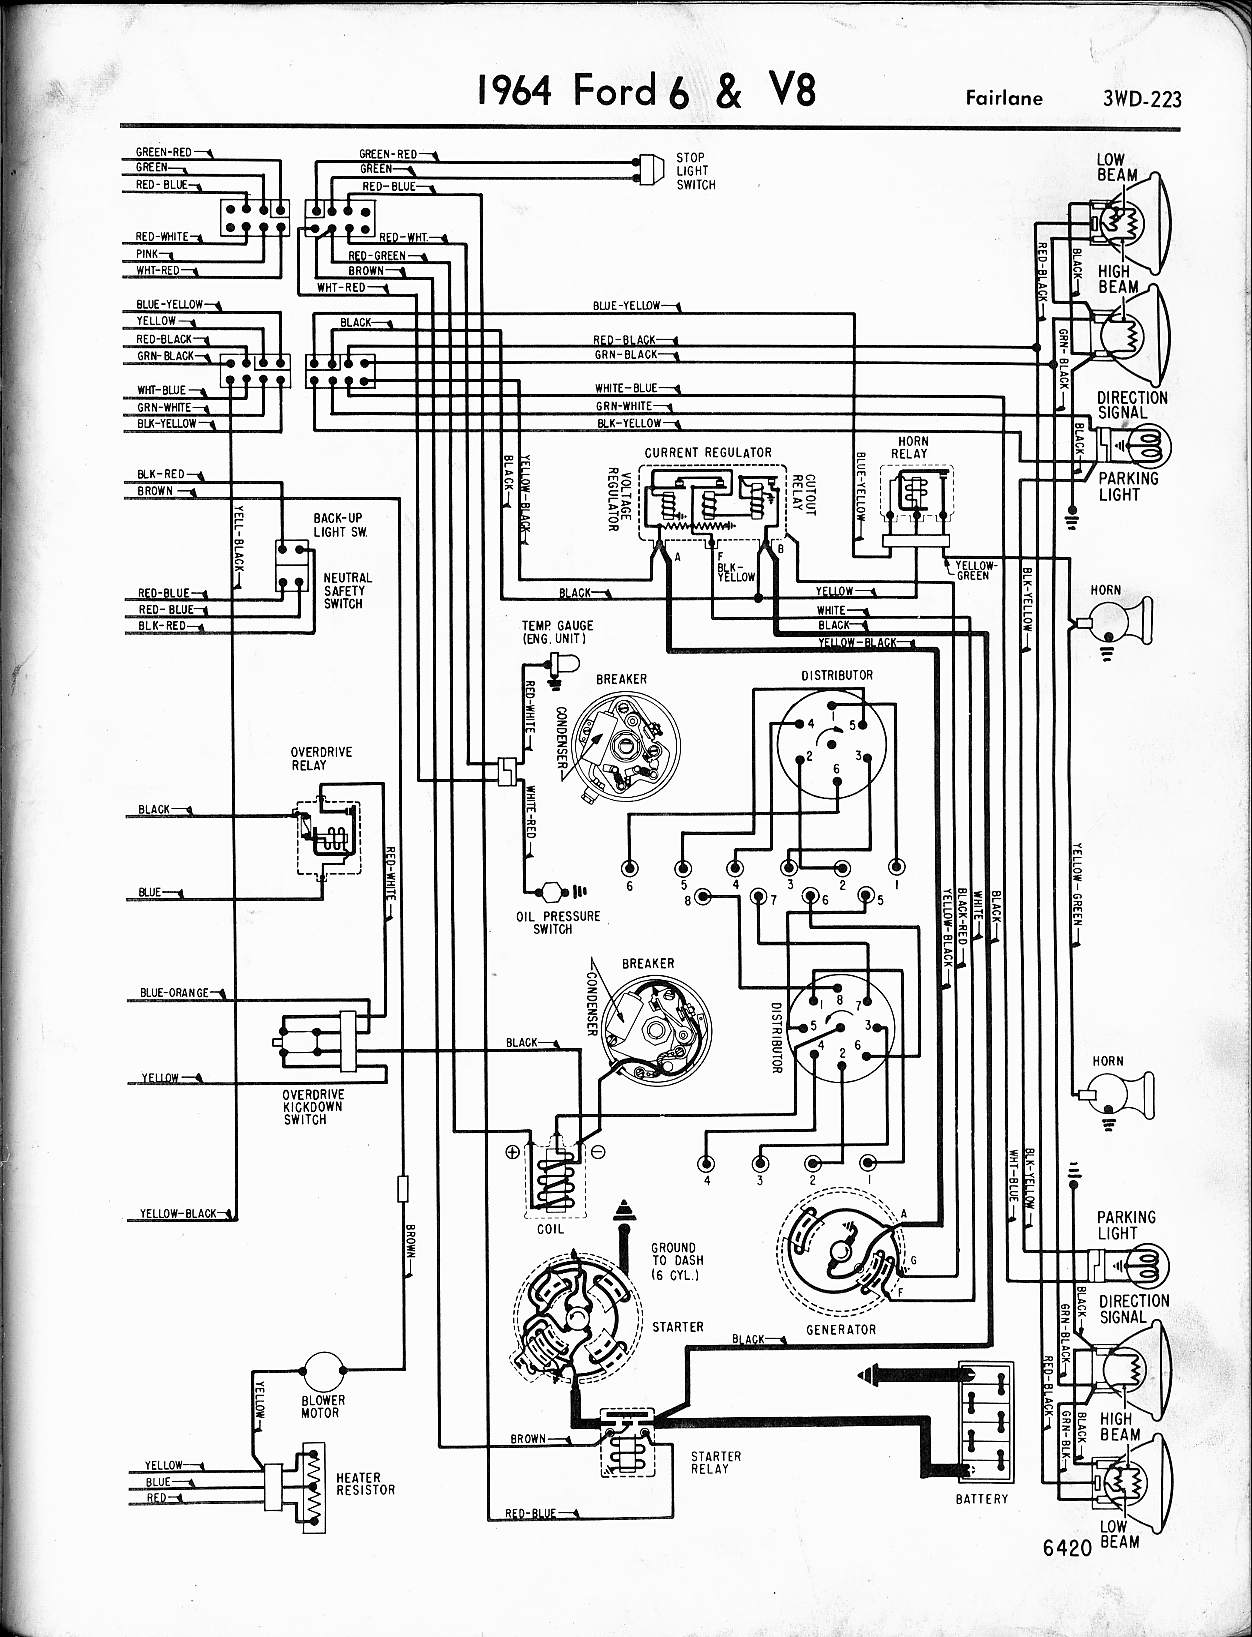 imcdb org i025429 furthermore Gmc 1 Ton Front Suspension Diagram in addition 1985 Lincoln Continental Mark VII Electrical Troubleshooting Manual P13851 moreover 221450506657449789 likewise Update 1964 Ford Fairlane 500 V8 302 Windsor Engine Wont Start Looking What Try Next. on 1959 ford f100 wiring diagram